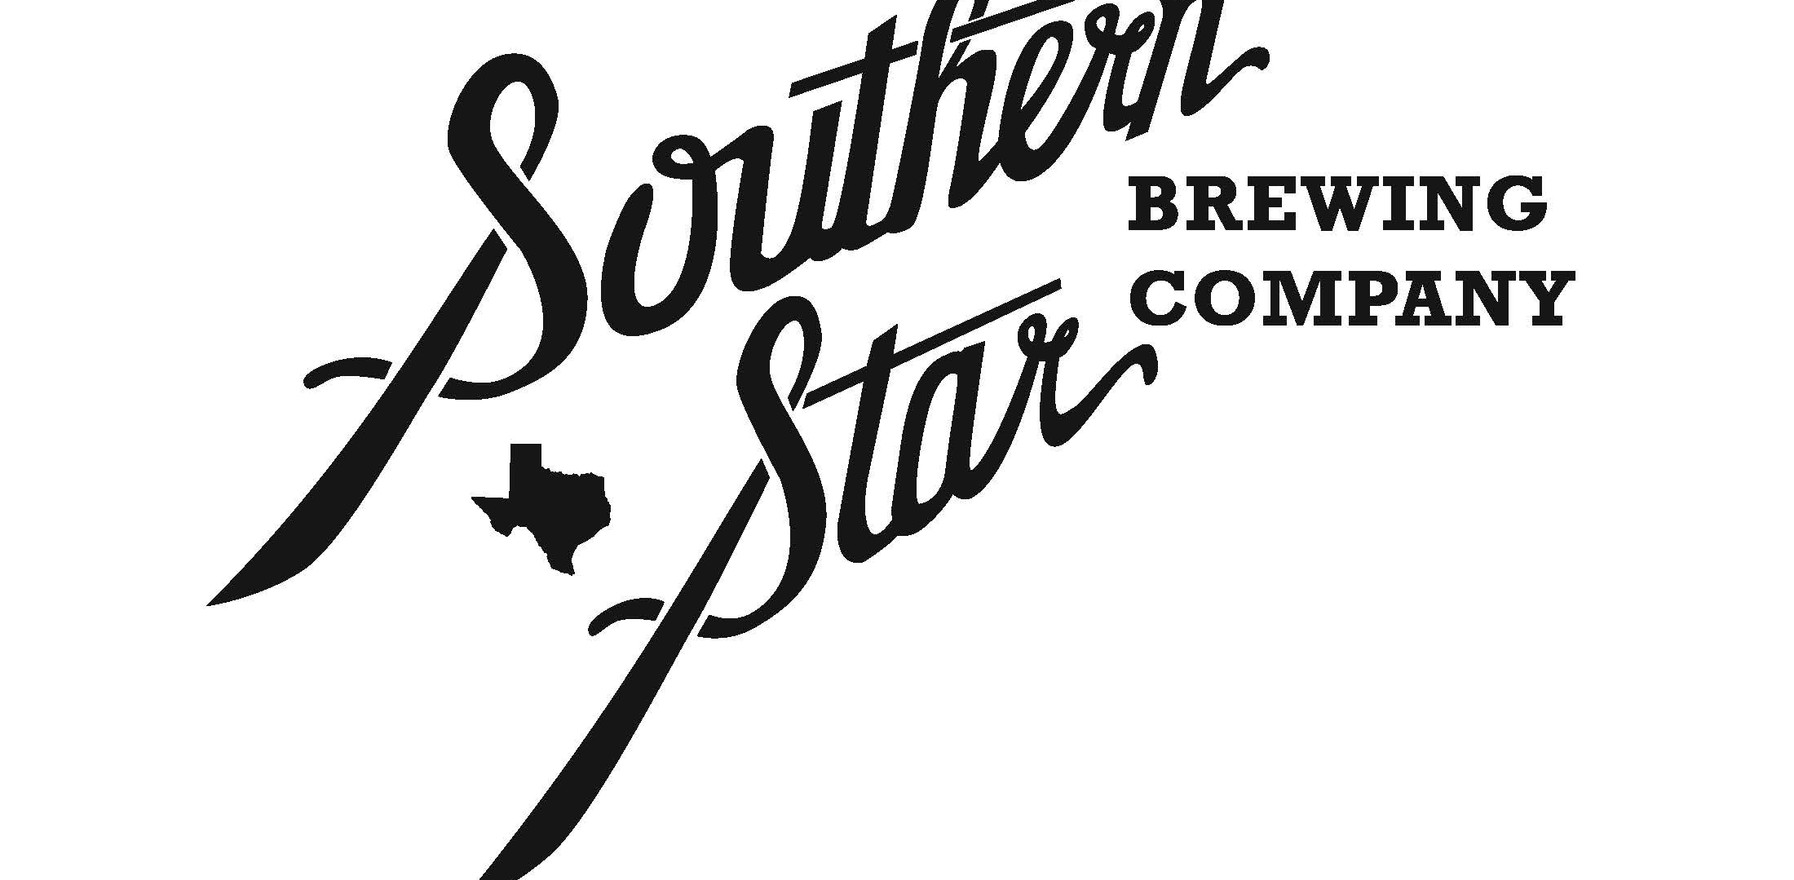 Southern Star Brewery